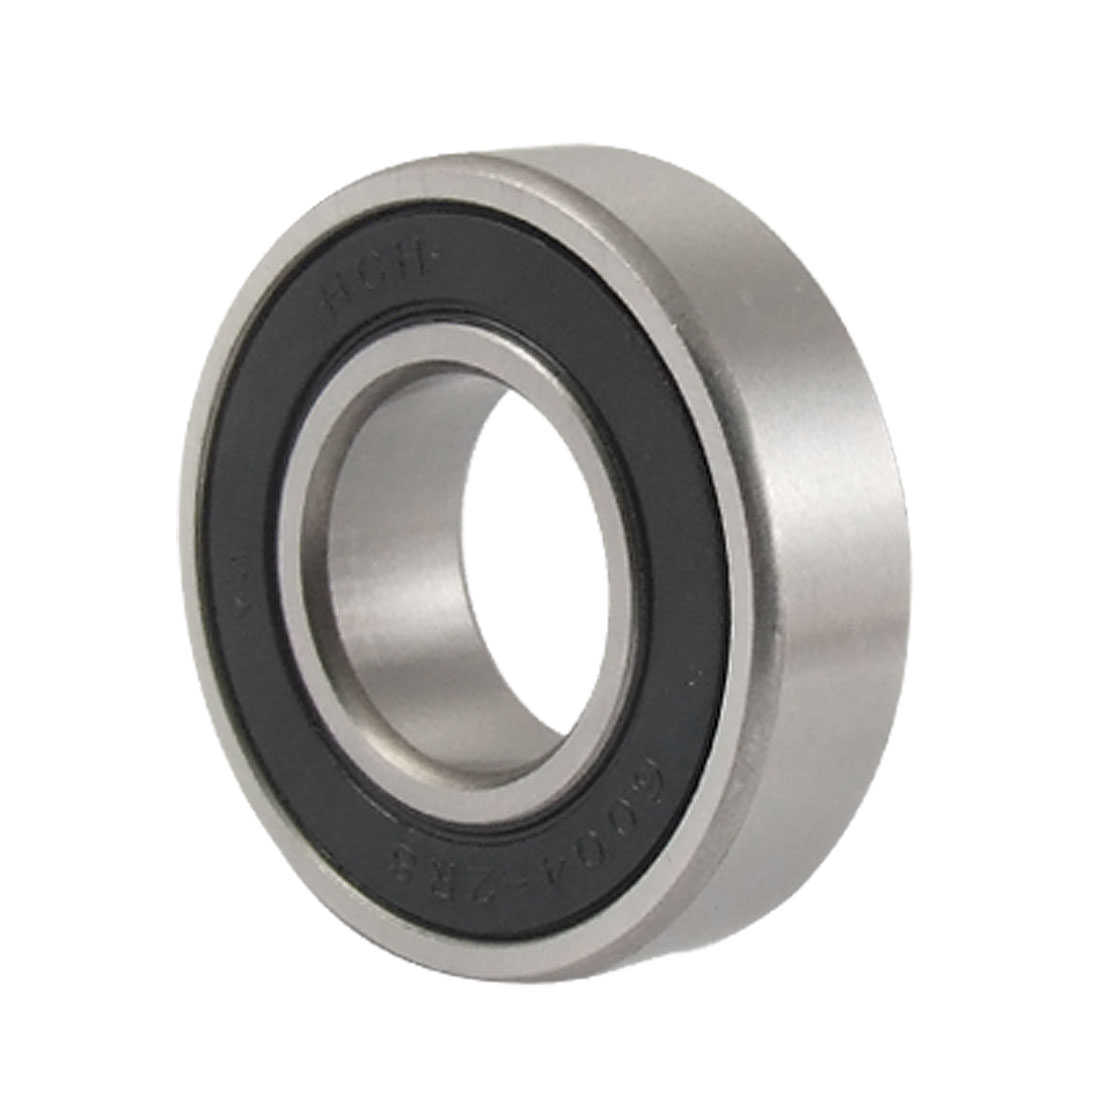 6004-2RS Double Side Sealed Ball Bearing 20mm x 42mm x 12mm